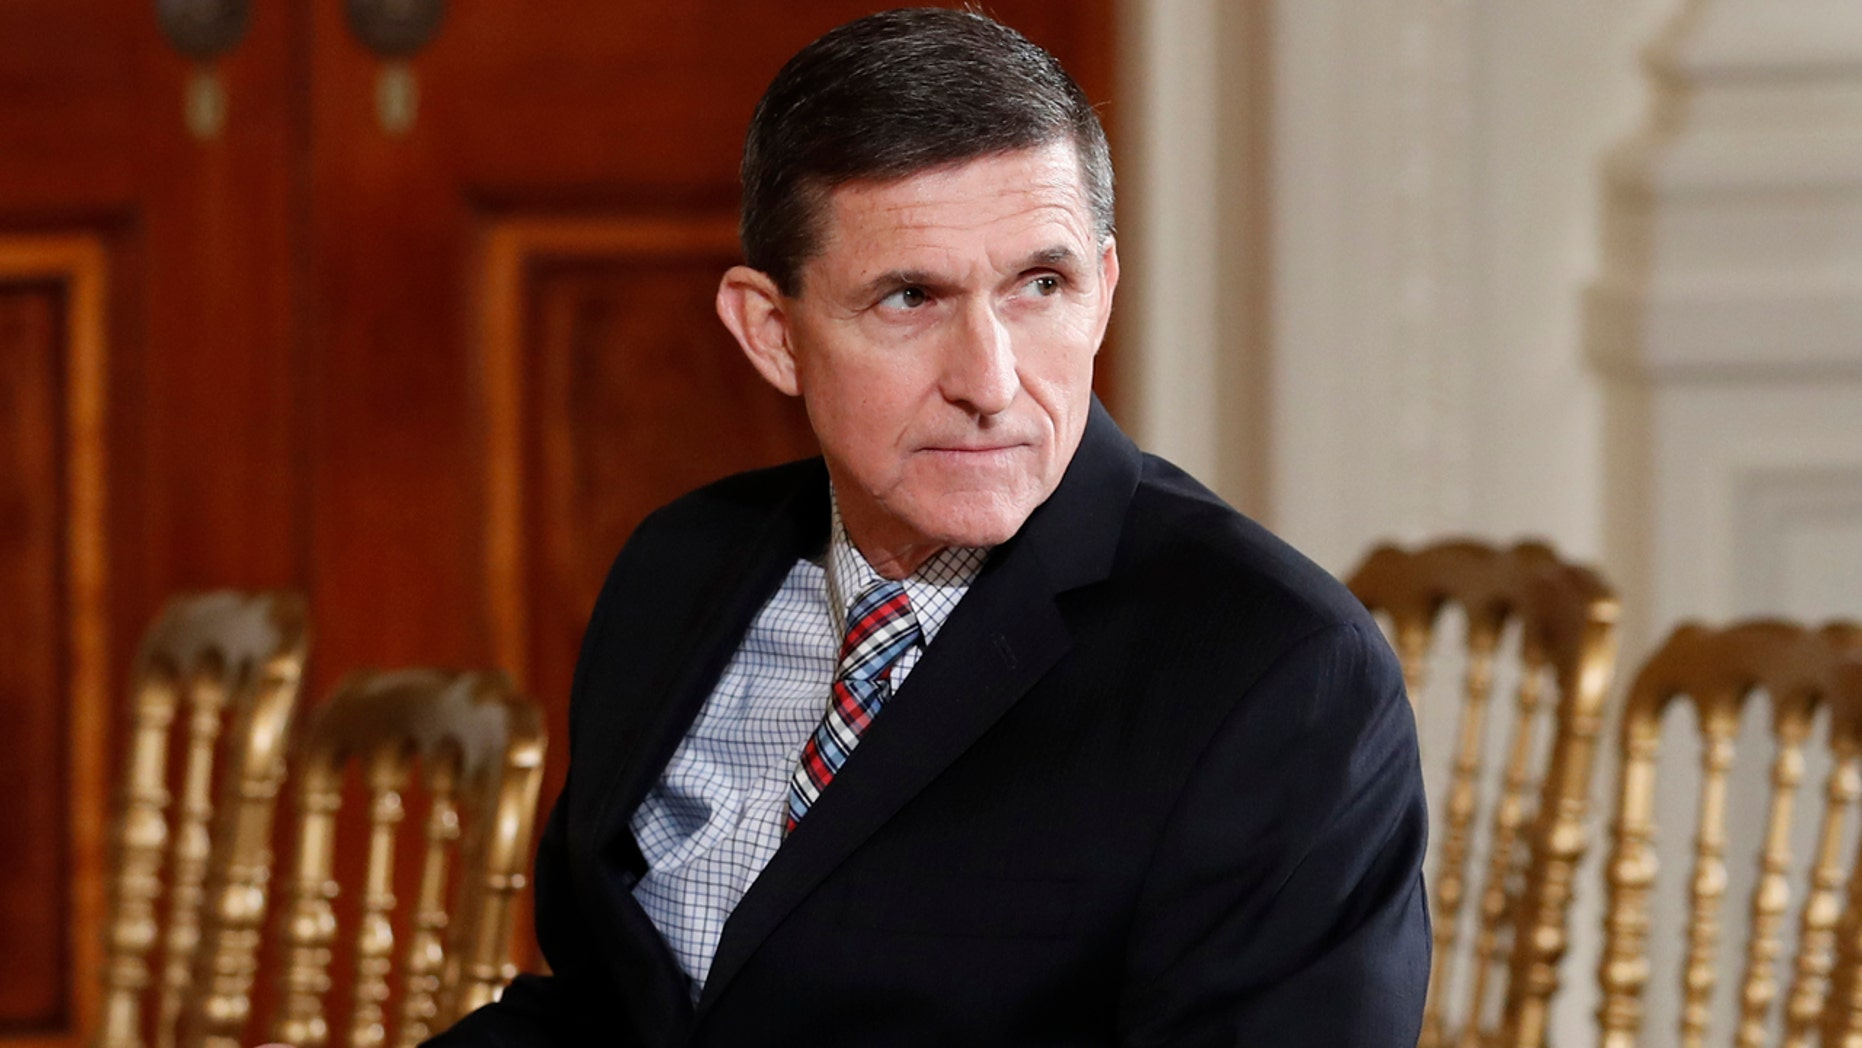 FILE - In this Feb. 10, 2017 file photo, then-National Security Adviser Michael Flynn sits in the East Room of the White House in Washington.  A member of Donald Trump's transition team asked national security officials in the Obama White House for the classified CIA profile on Russia's ambassador to the United States. The unusual request appears to signal that Trump's own team had concerns about whether his pick for national security adviser, Mike Flynn, fully understood that he was dealing with a man rumored to have ties to Russian intelligence agencies. (AP Photo/Carolyn Kaster, File)